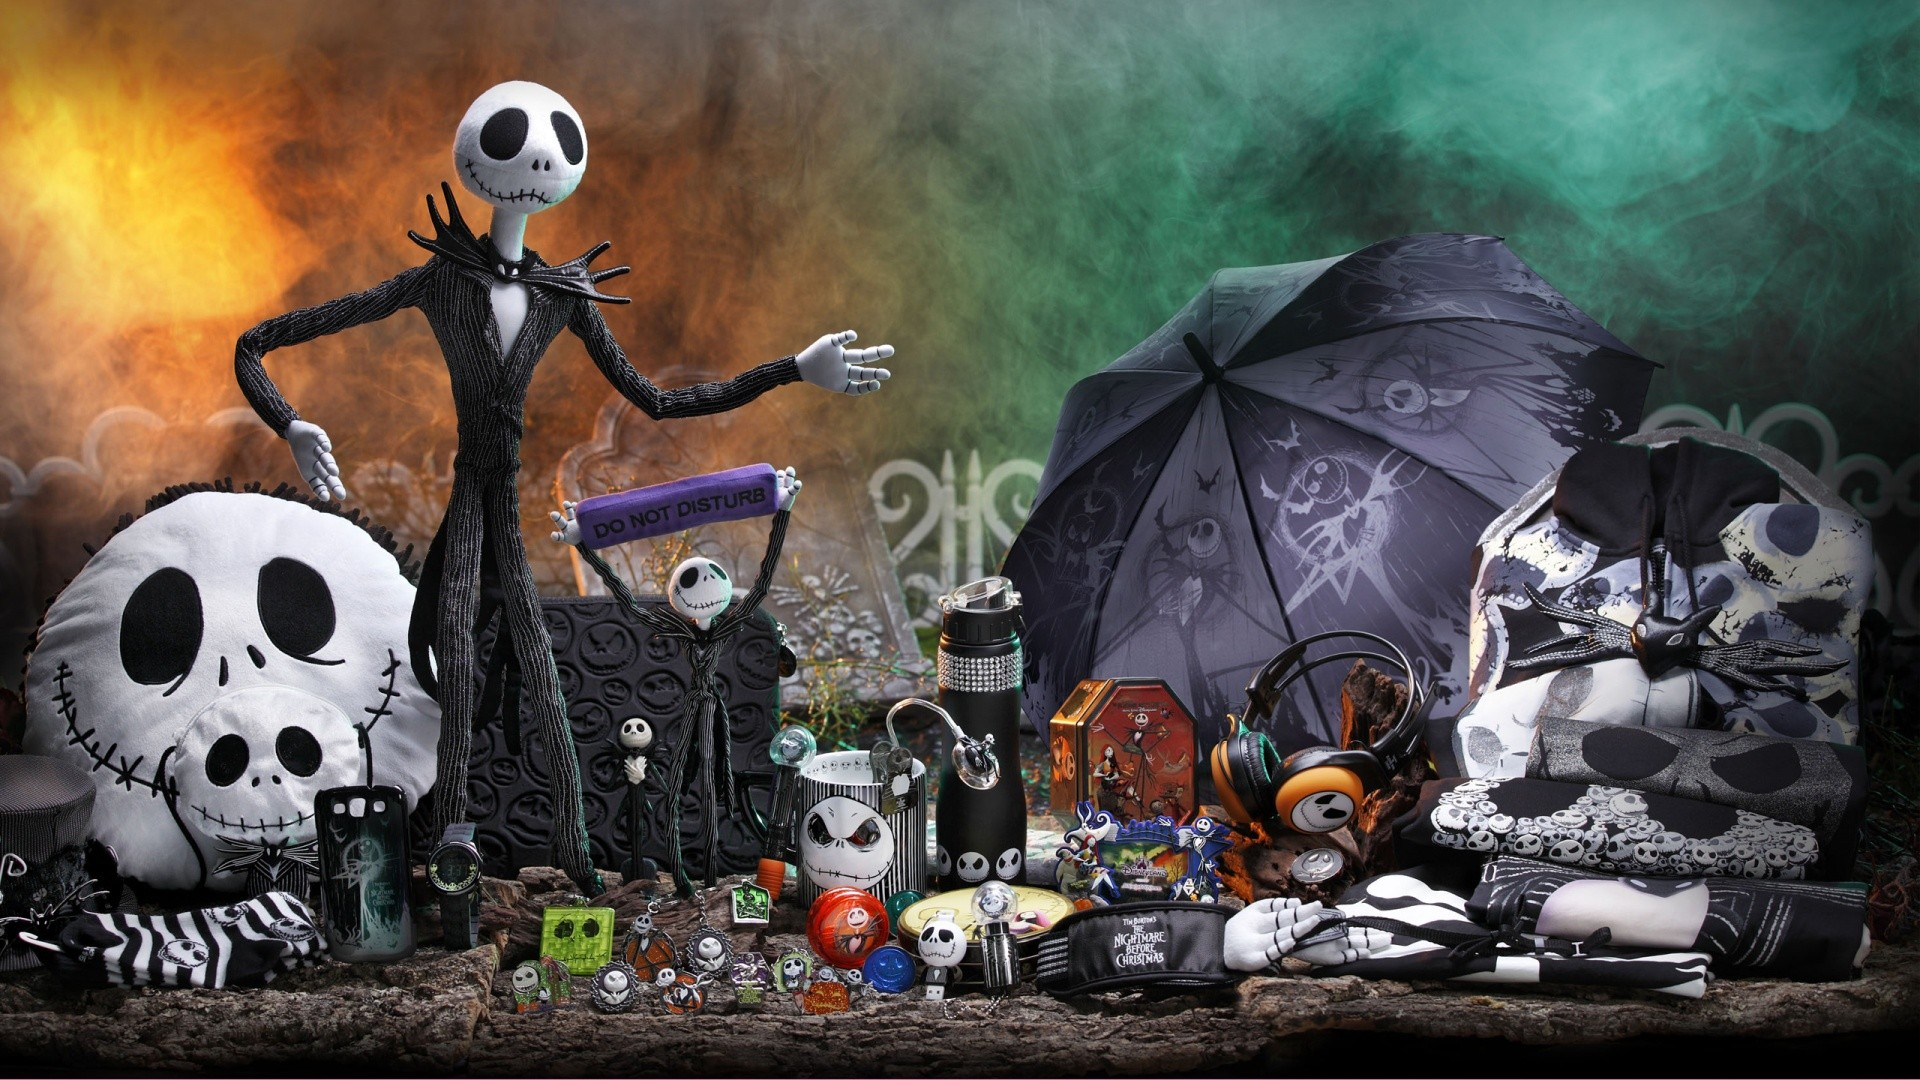 The Nightmare Before Christmas Poster Wallpaper with high-resolution 1920x1080 pixel. You can use this poster wallpaper for your Desktop Computers, Mac Screensavers, Windows Backgrounds, iPhone Wallpapers, Tablet or Android Lock screen and another Mobile device